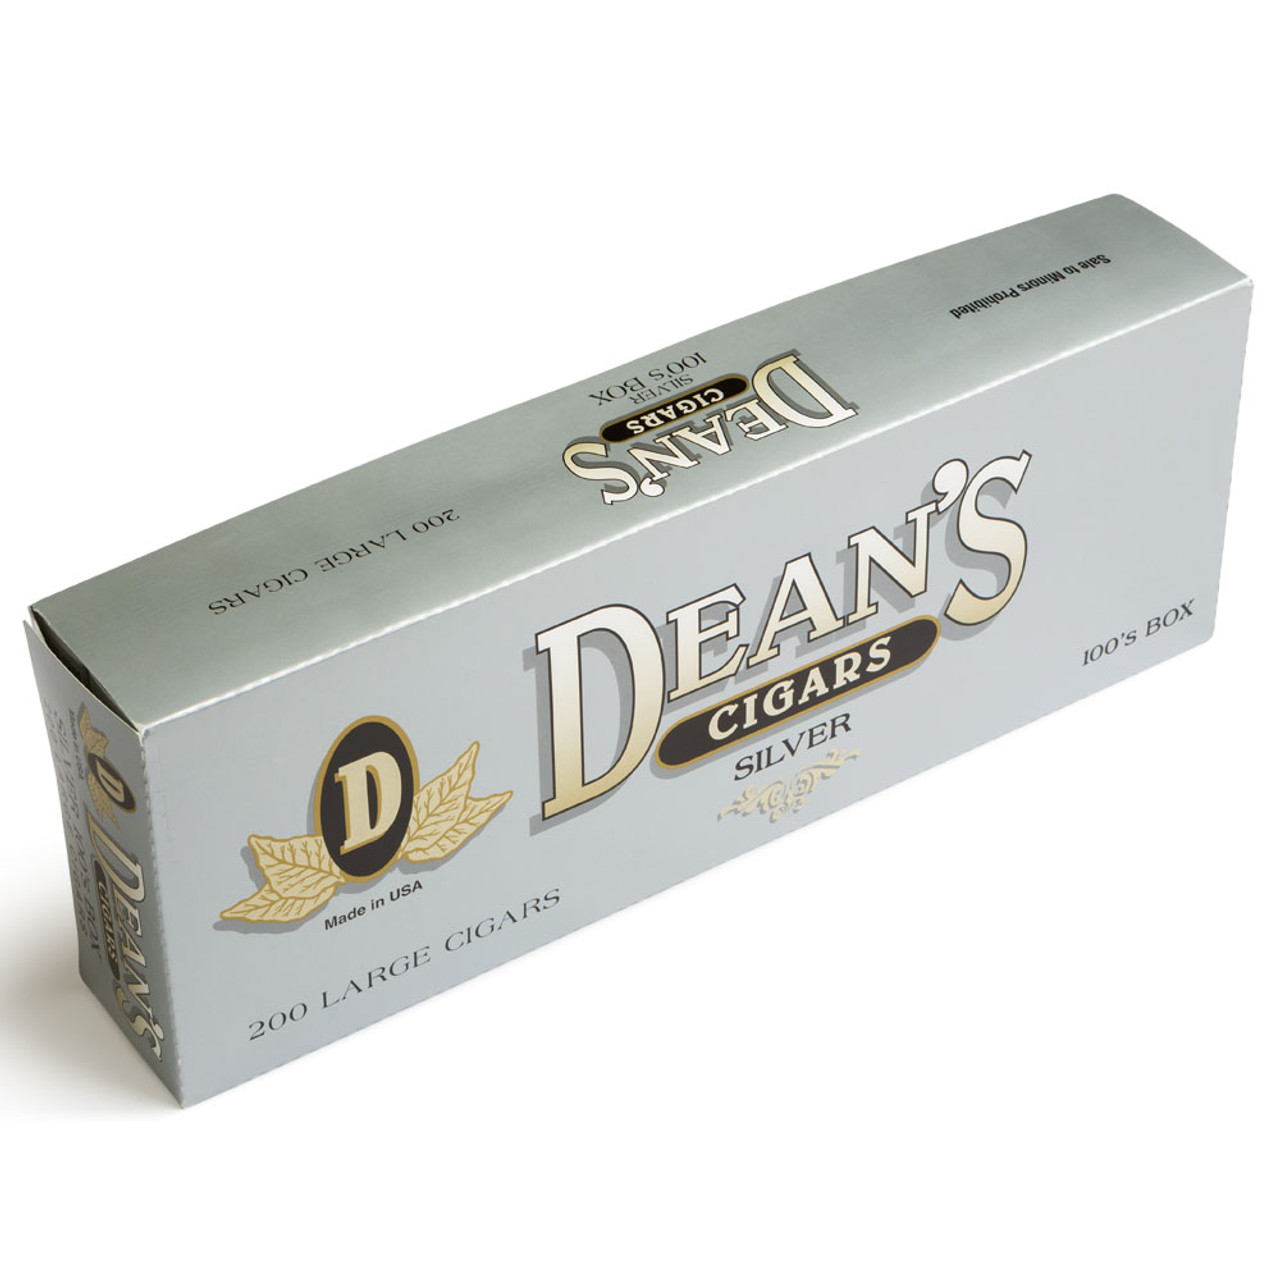 Dean's Filtered Cigars Silver Cigars - 3.87 x 20 (10 Packs of 20 (200 Total))